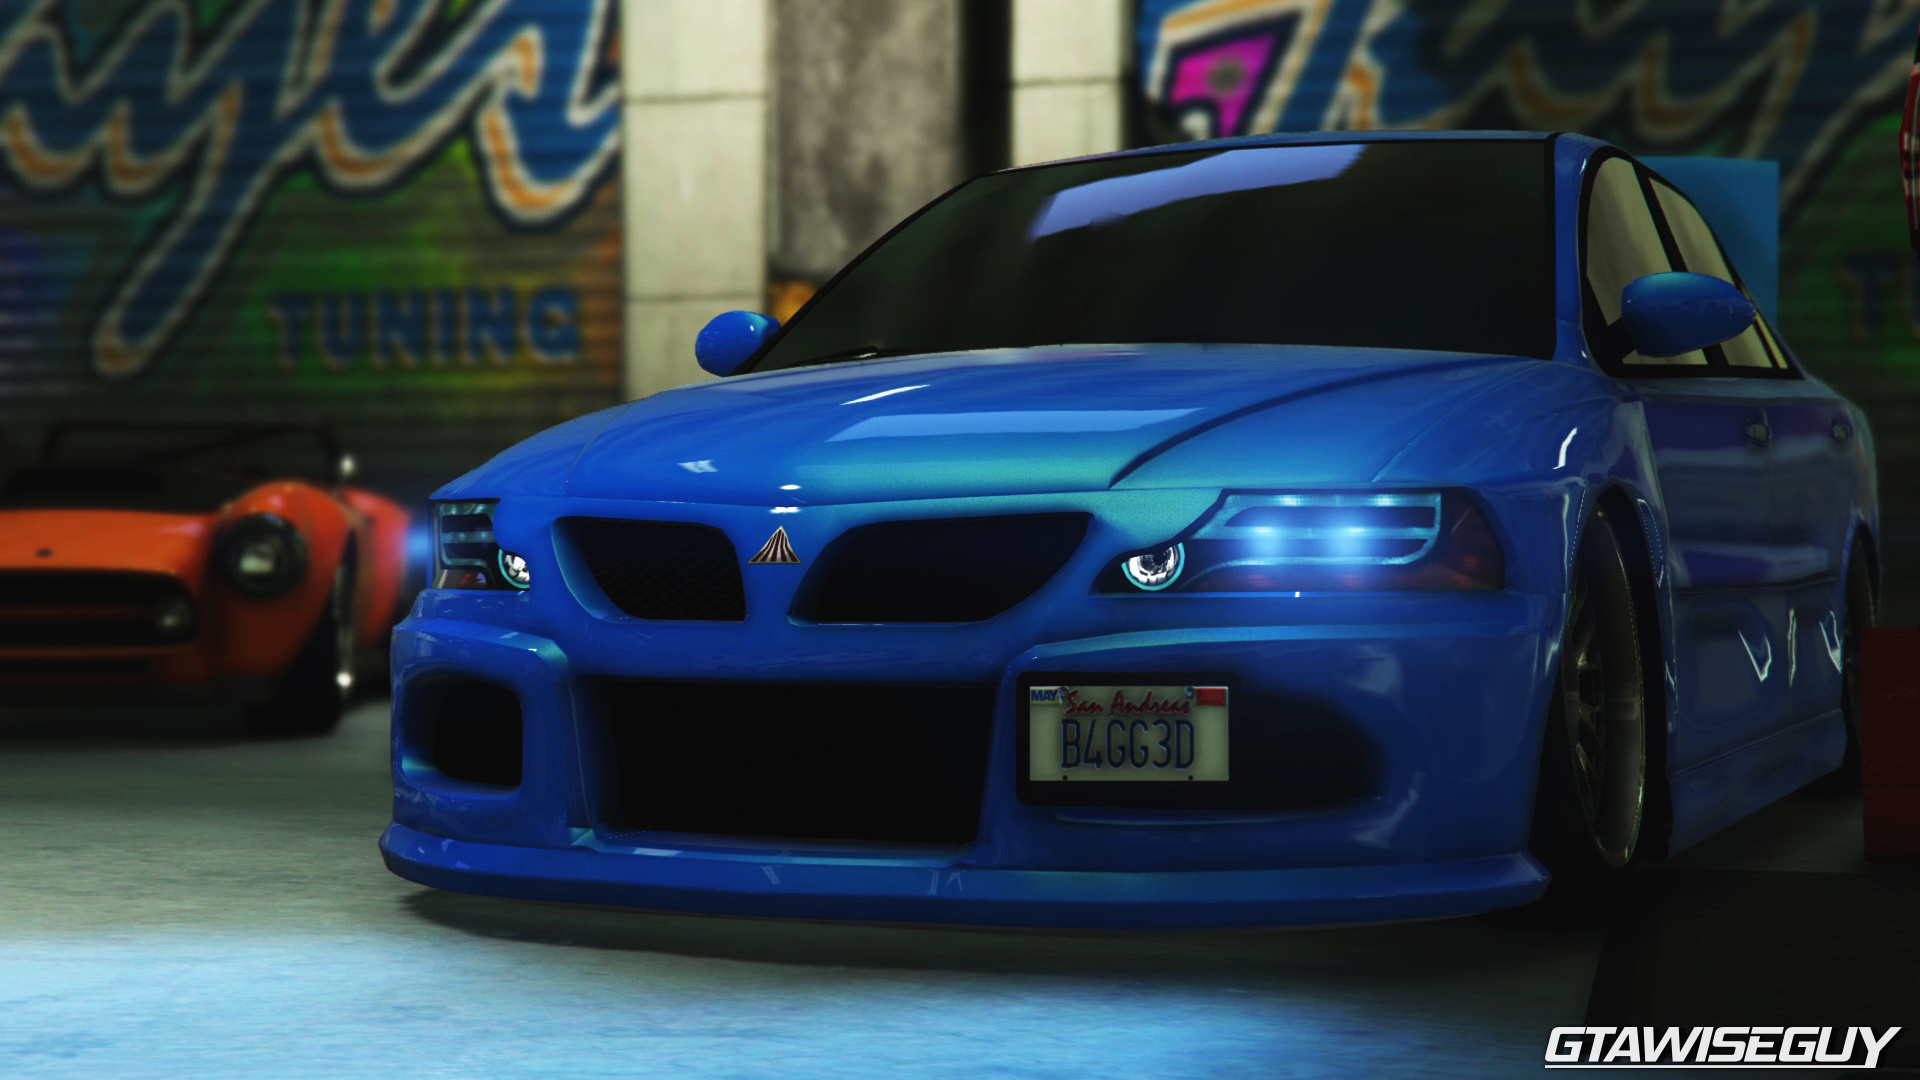 Best Place To Find Fast Cars In Gta